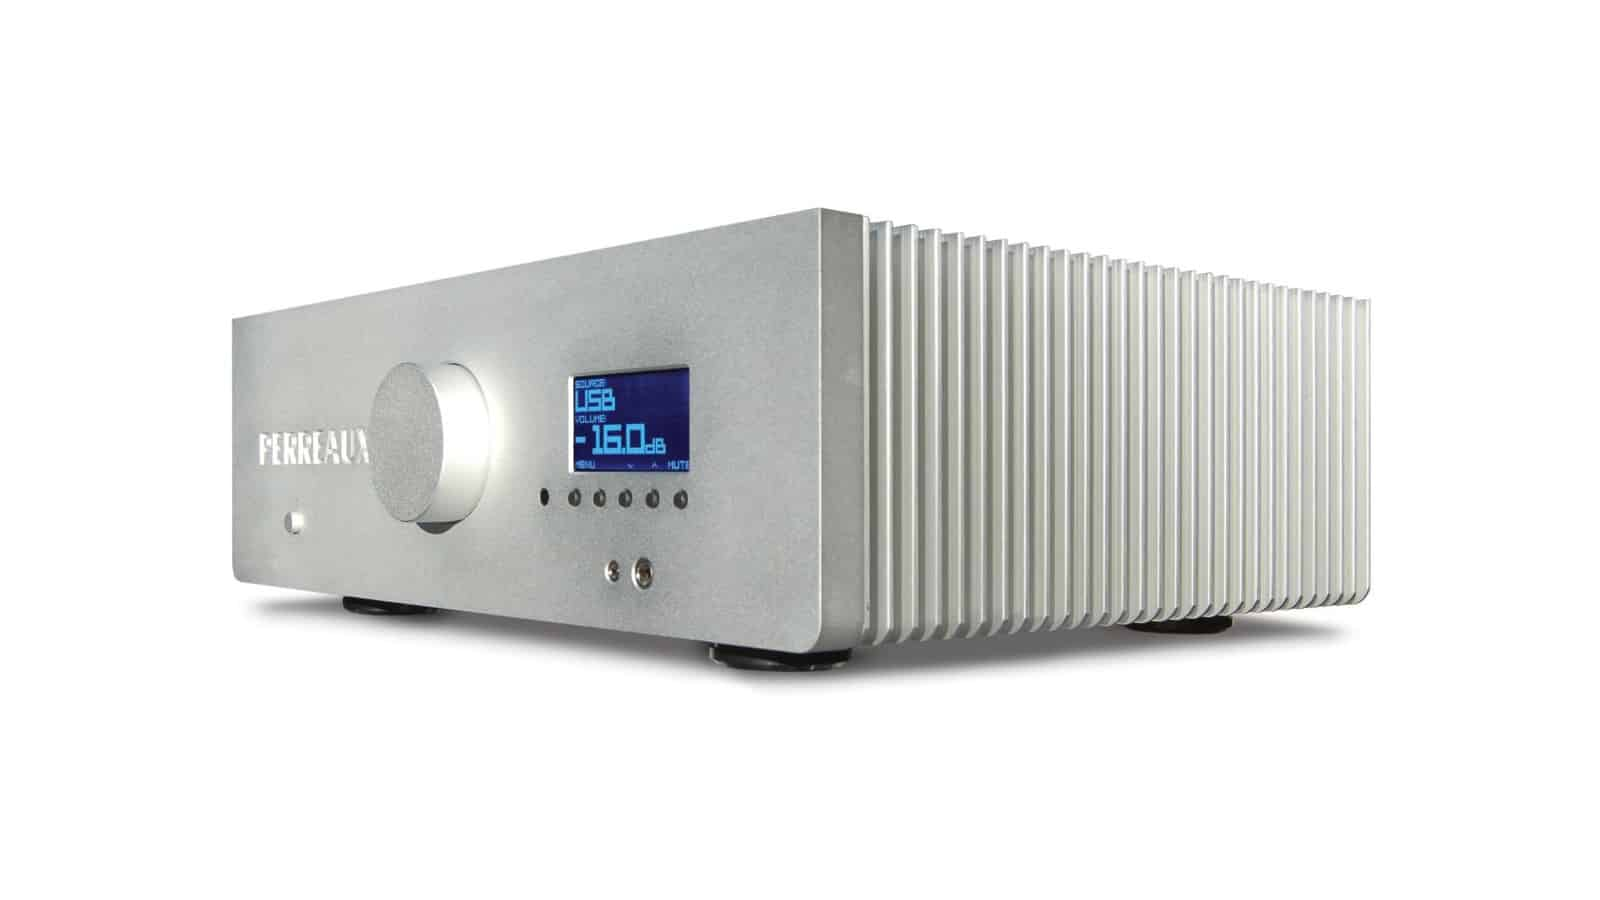 perreaux-255i-stereo-integrated-amplifier